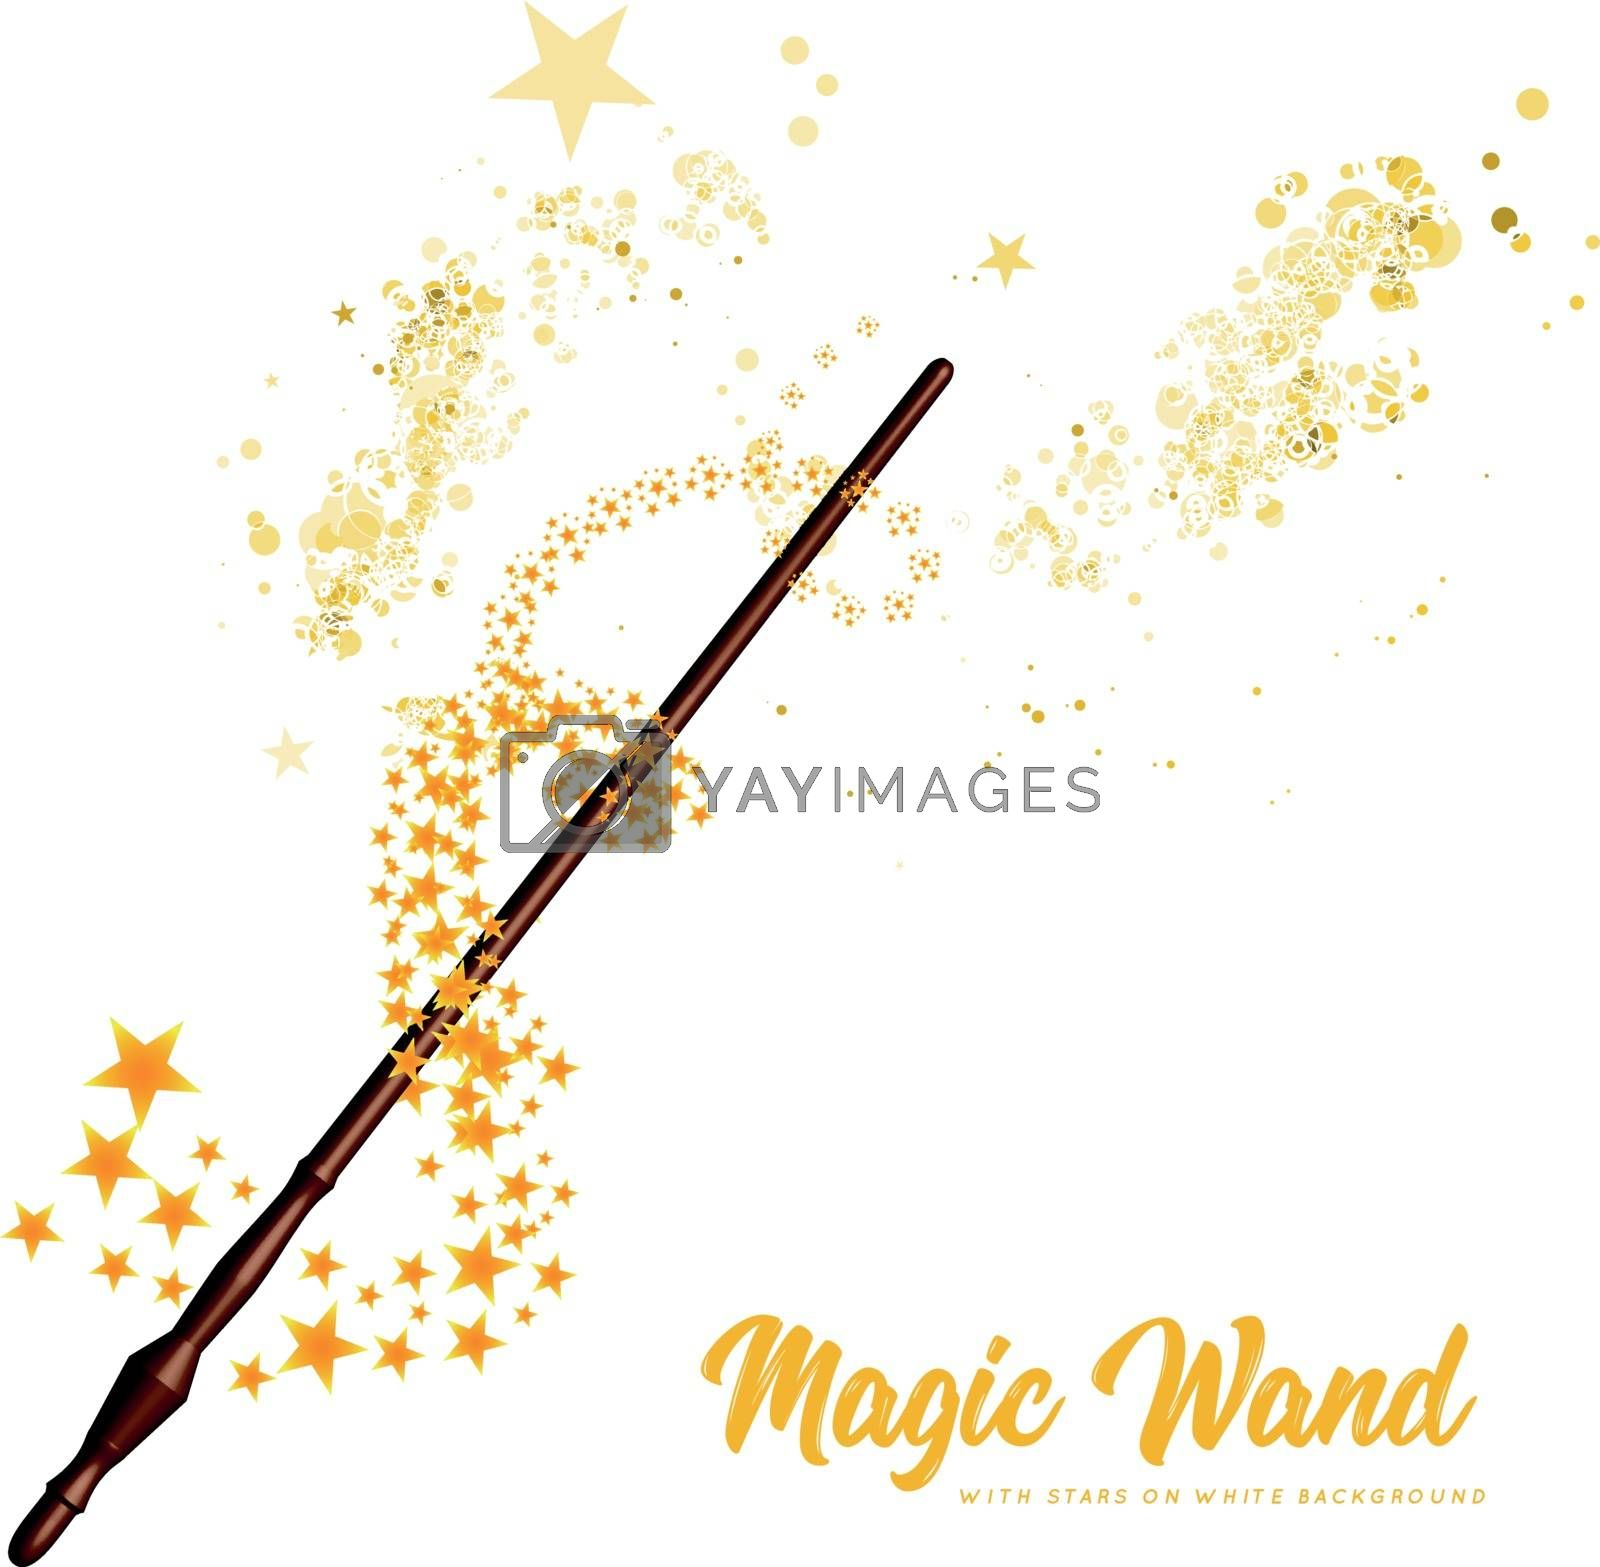 Royalty free image of Magic wand with stars on white background by sermax55